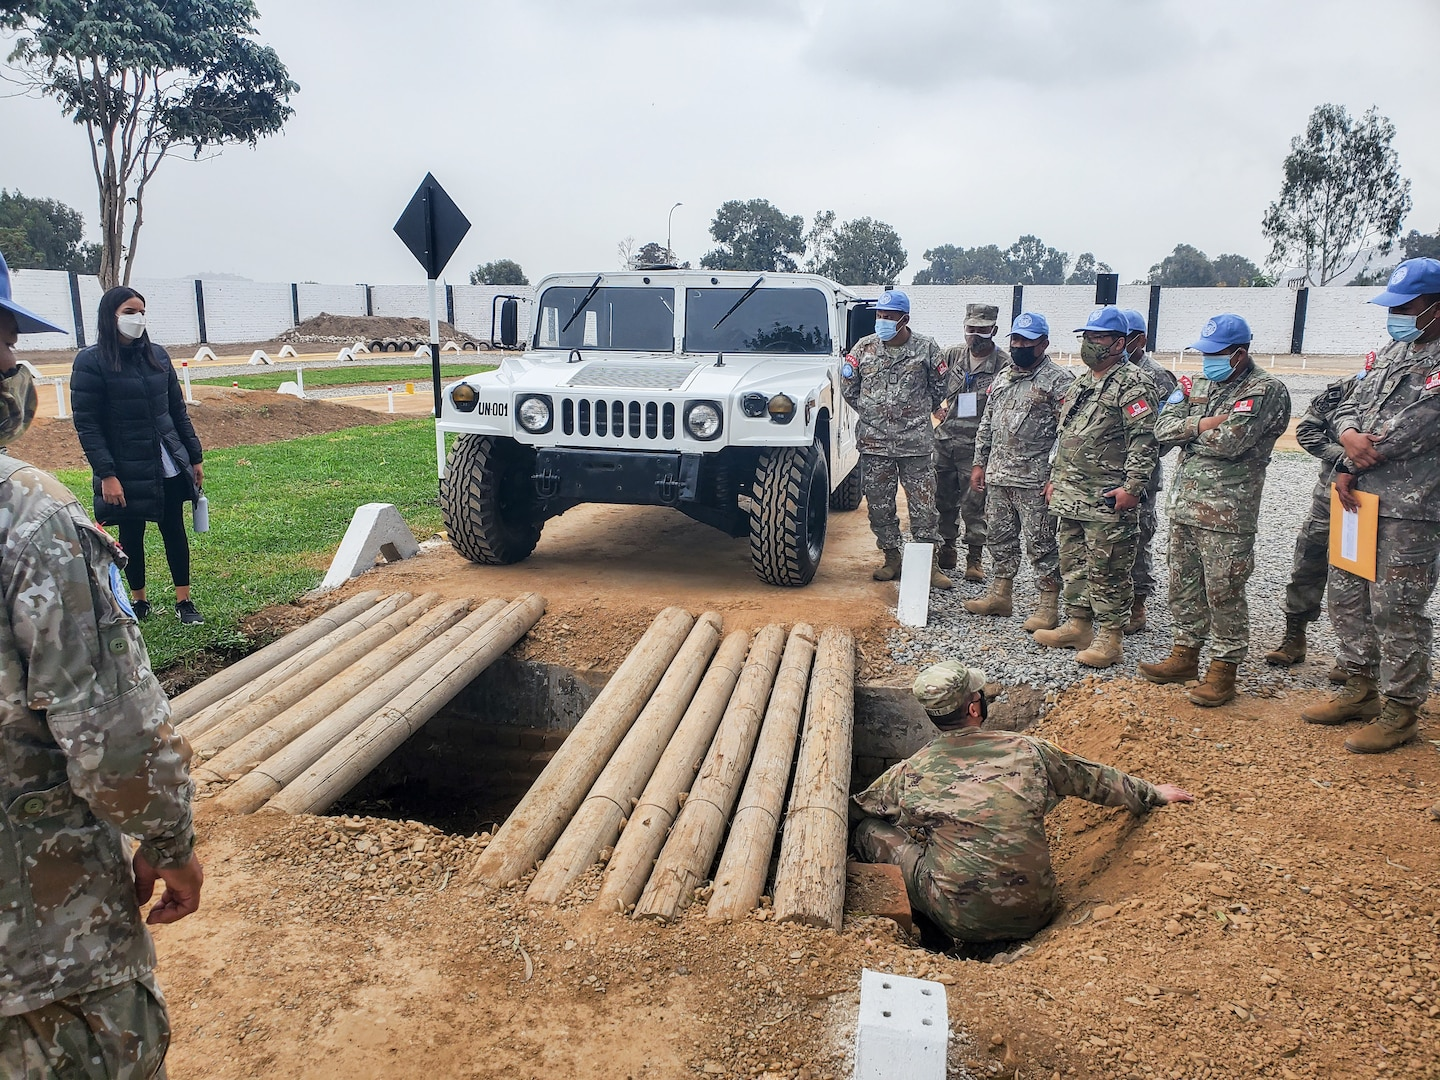 Members of the West Virginia National Guard provide Mechanics Mobile Training Team, Preventative Maintenance Checks and Services, and Driver's Training to members of the Peruvian Armed Forces on the M1165 HMMWV (High Mobility Multipurpose Wheeled Vehicle), as a part of the National Guard's State Partnership Program in Lima, Peru, June 3, 2021. Peru will utilize the training on international peacekeeping missions as part of the United Nations Multidimensional Integrated Stabilization Mission in the Central African Republic, conducting missions as diverse as clearing terrain, airfield and heliport construction, equipment transportation and convoy operations including food and water supplies, communications, intelligence, as well as legal and medical operations. (Courtesy photo)